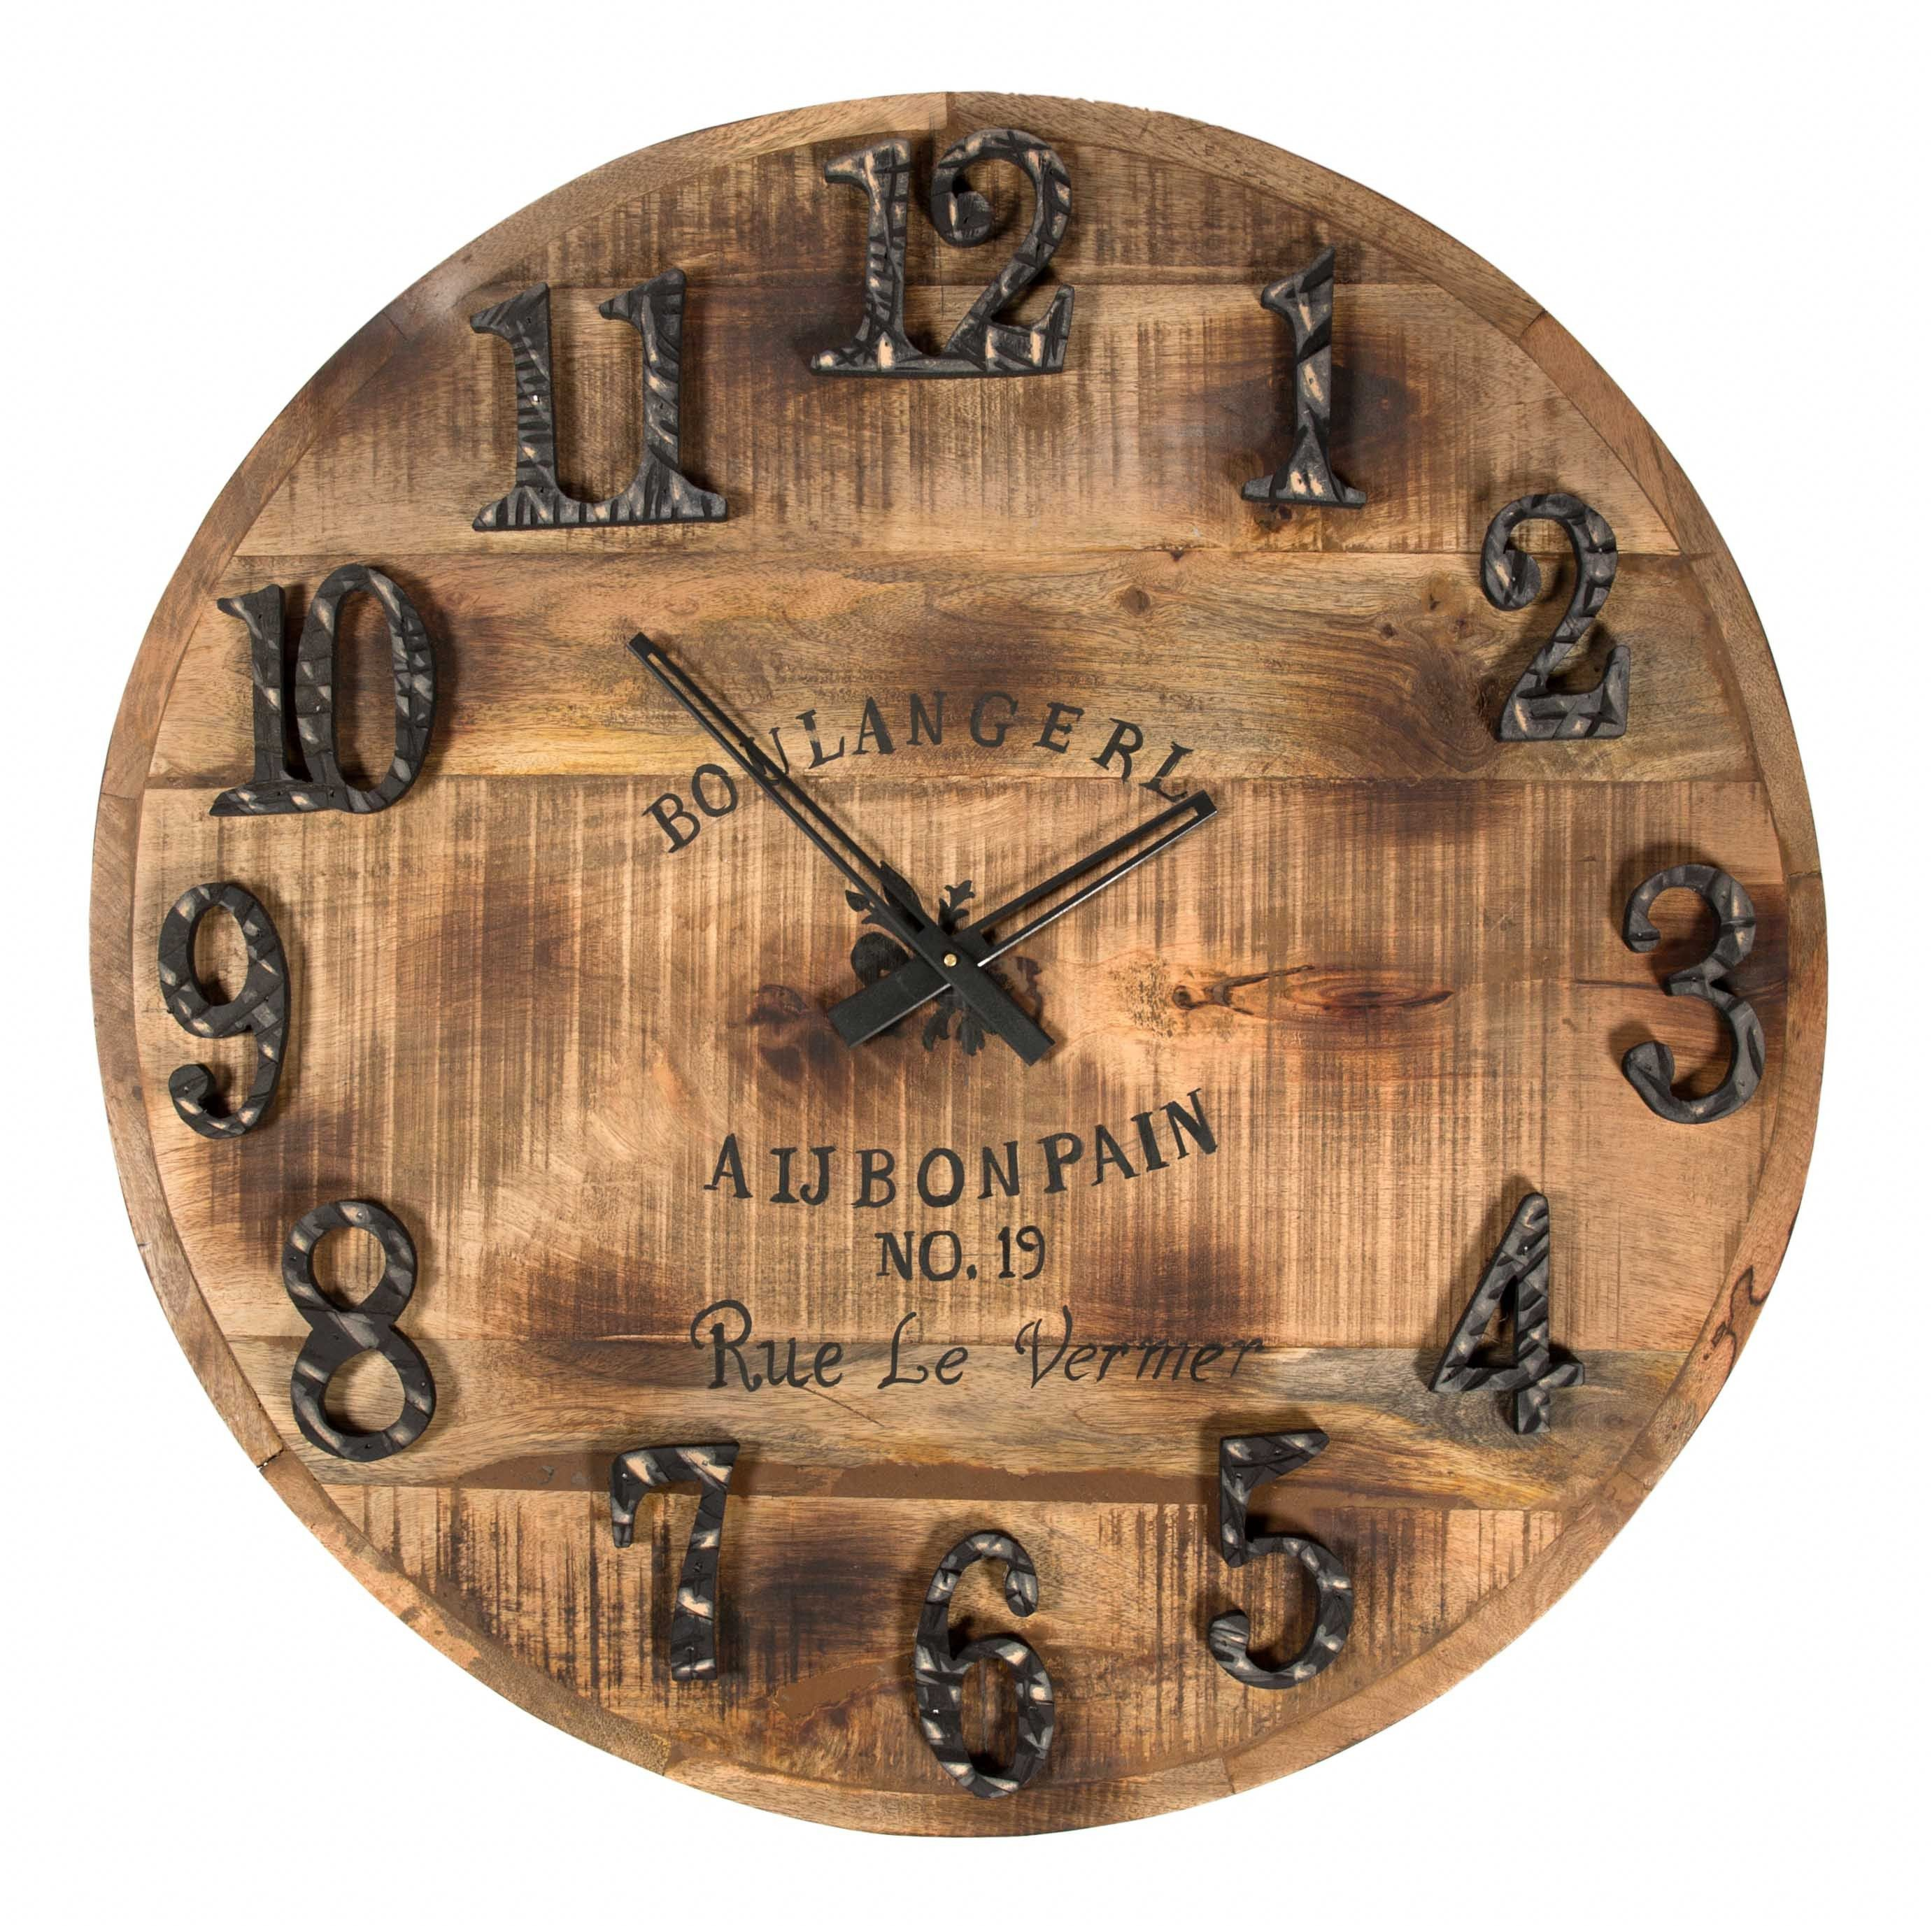 Decorative Wall Clocks for Sale - Rustic Wooden Clock  This Rustic wooden clock with French writing and metal numerals will fit in with other recycled timber pieces in an industrial environment.